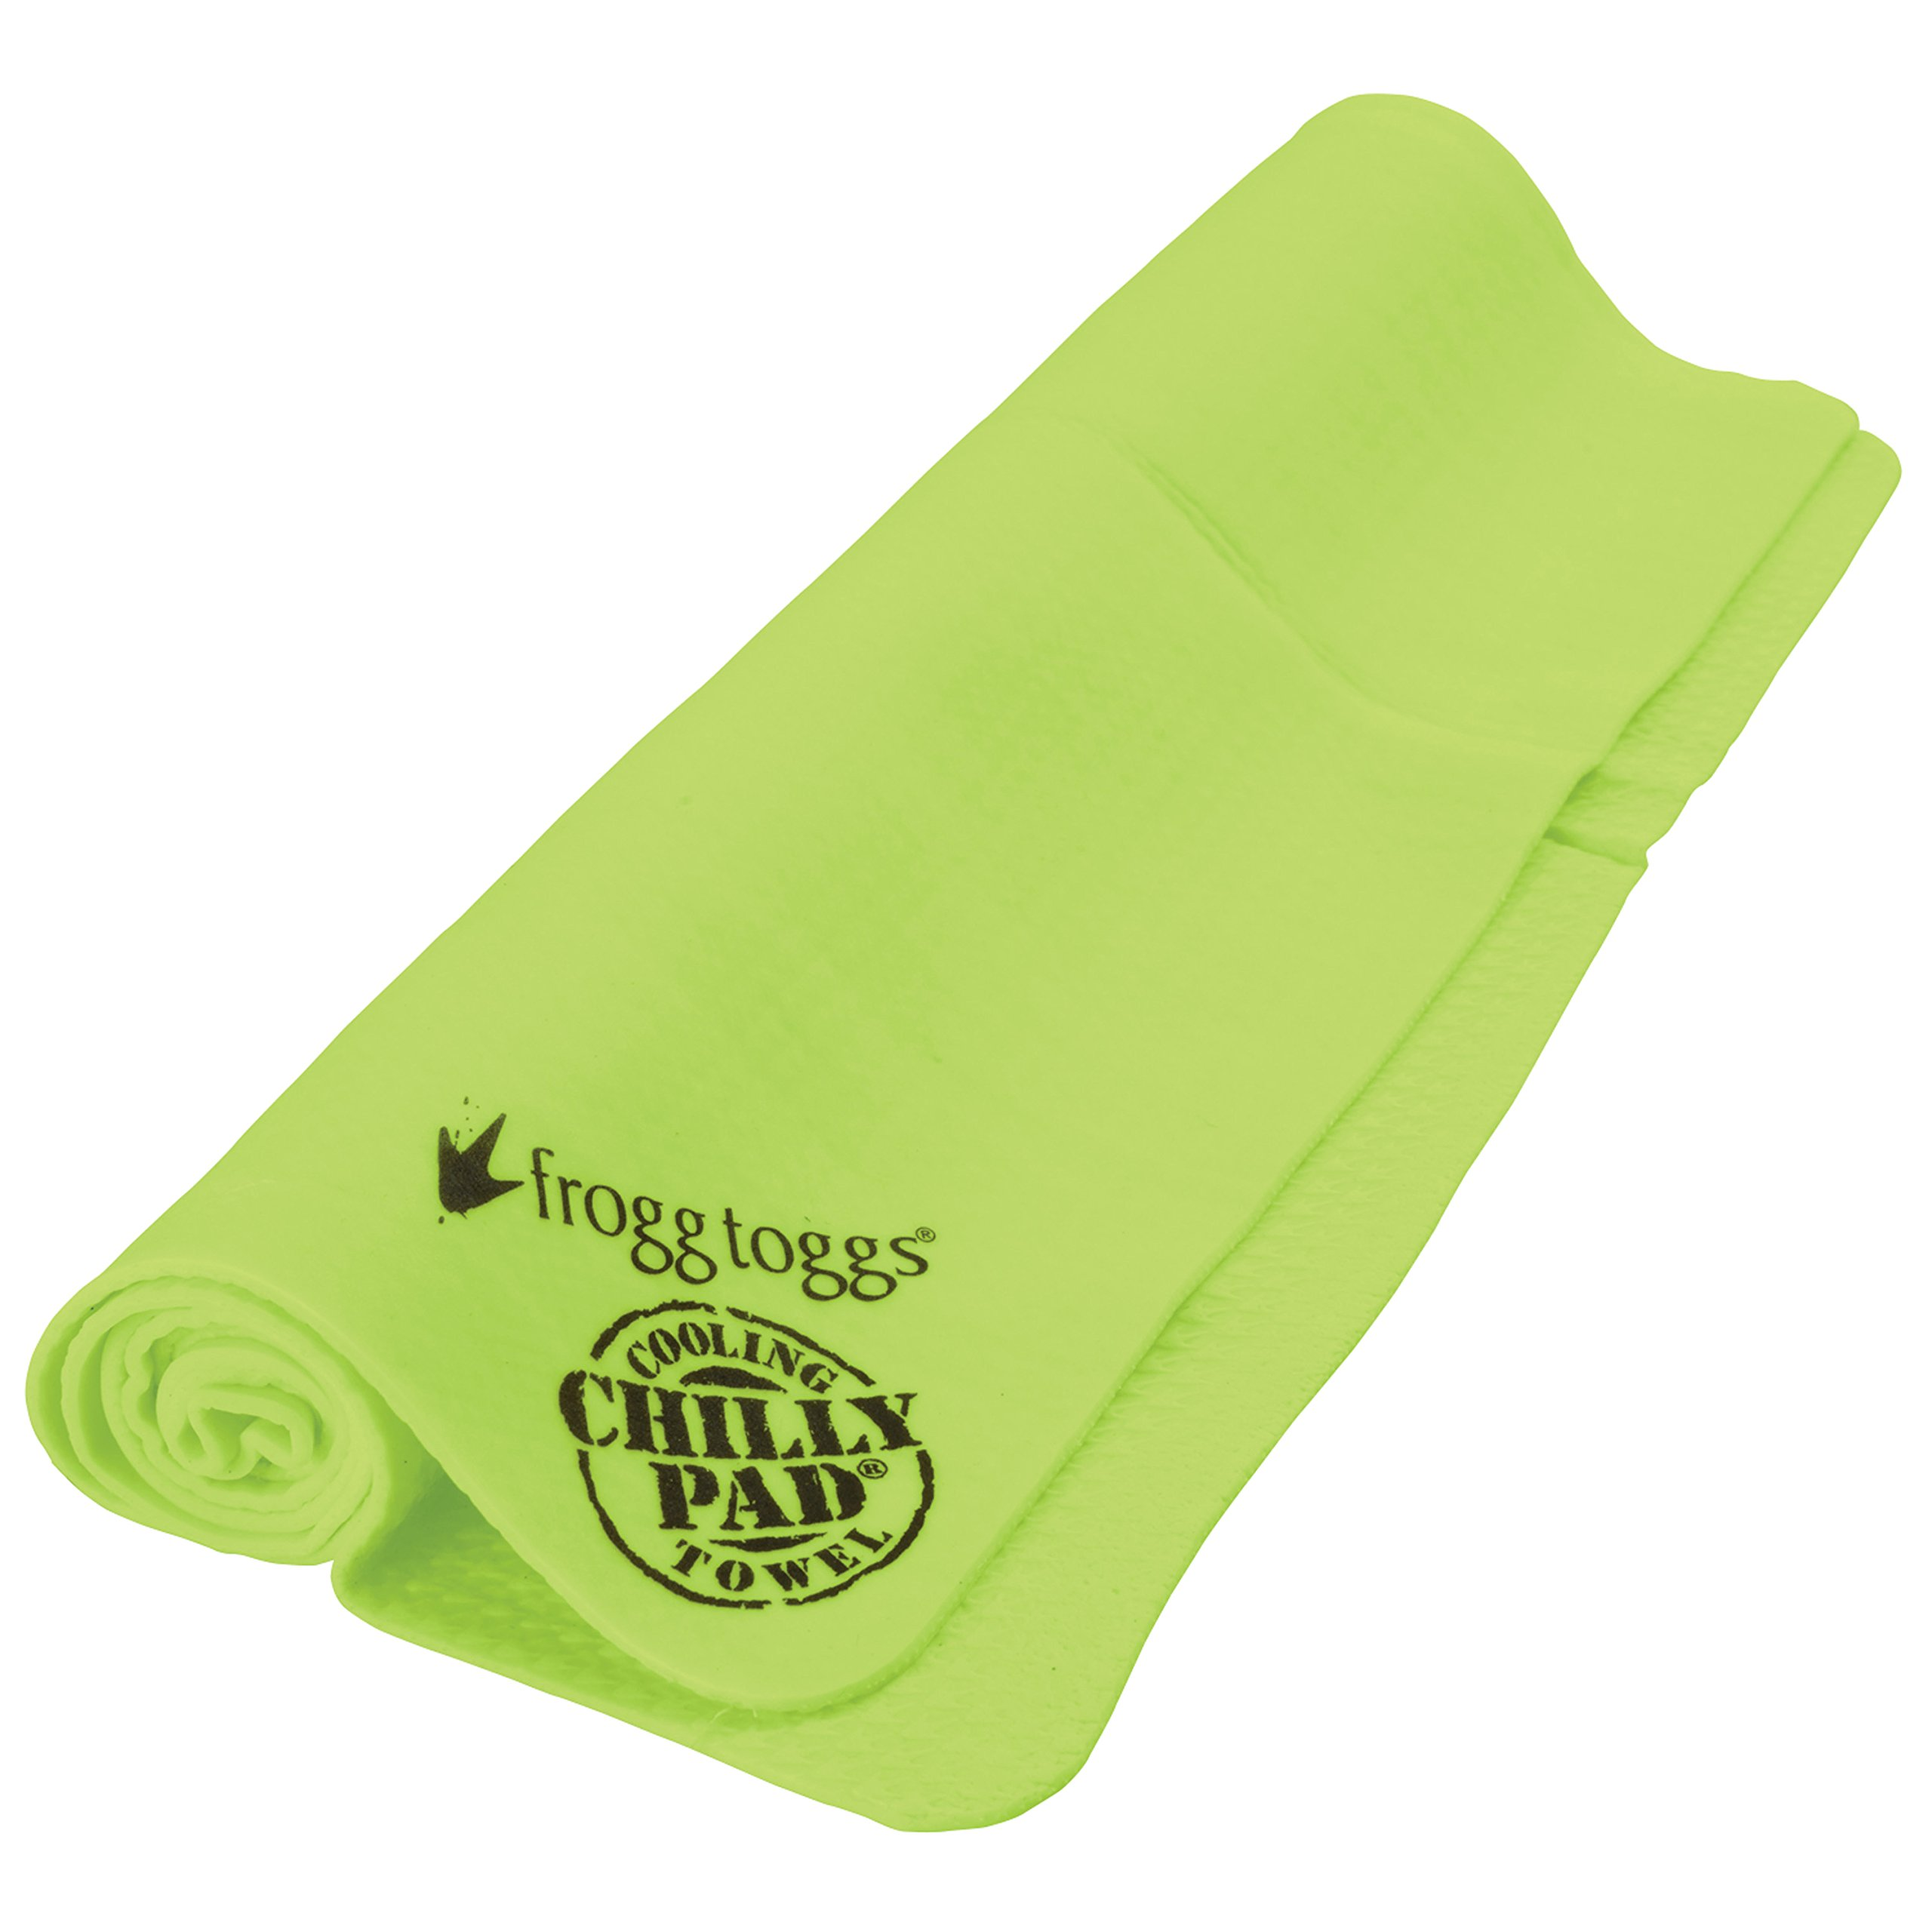 Frogg Toggs Chilly Pad Cooling Towel, HiVis Lime Green, Size 33'' x 13''